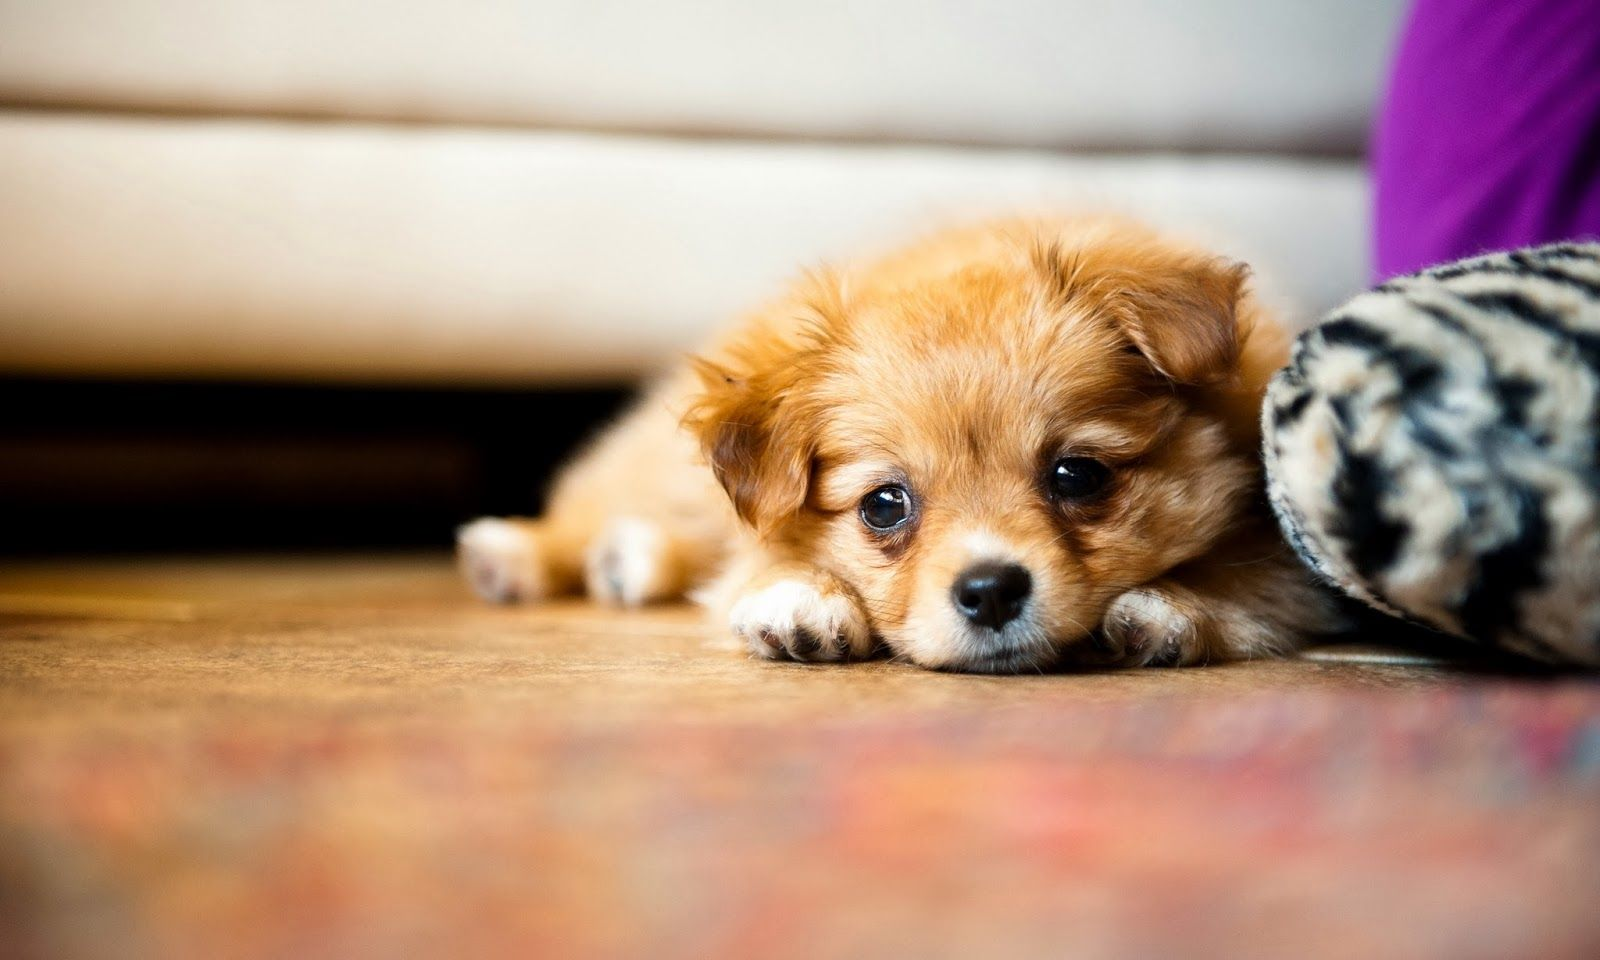 Puppy Photography 1080p Wallpapers 1 Jpg 1 600 960 Pixels Cute Puppy Wallpaper Cute Puppy Pictures Puppy Pictures